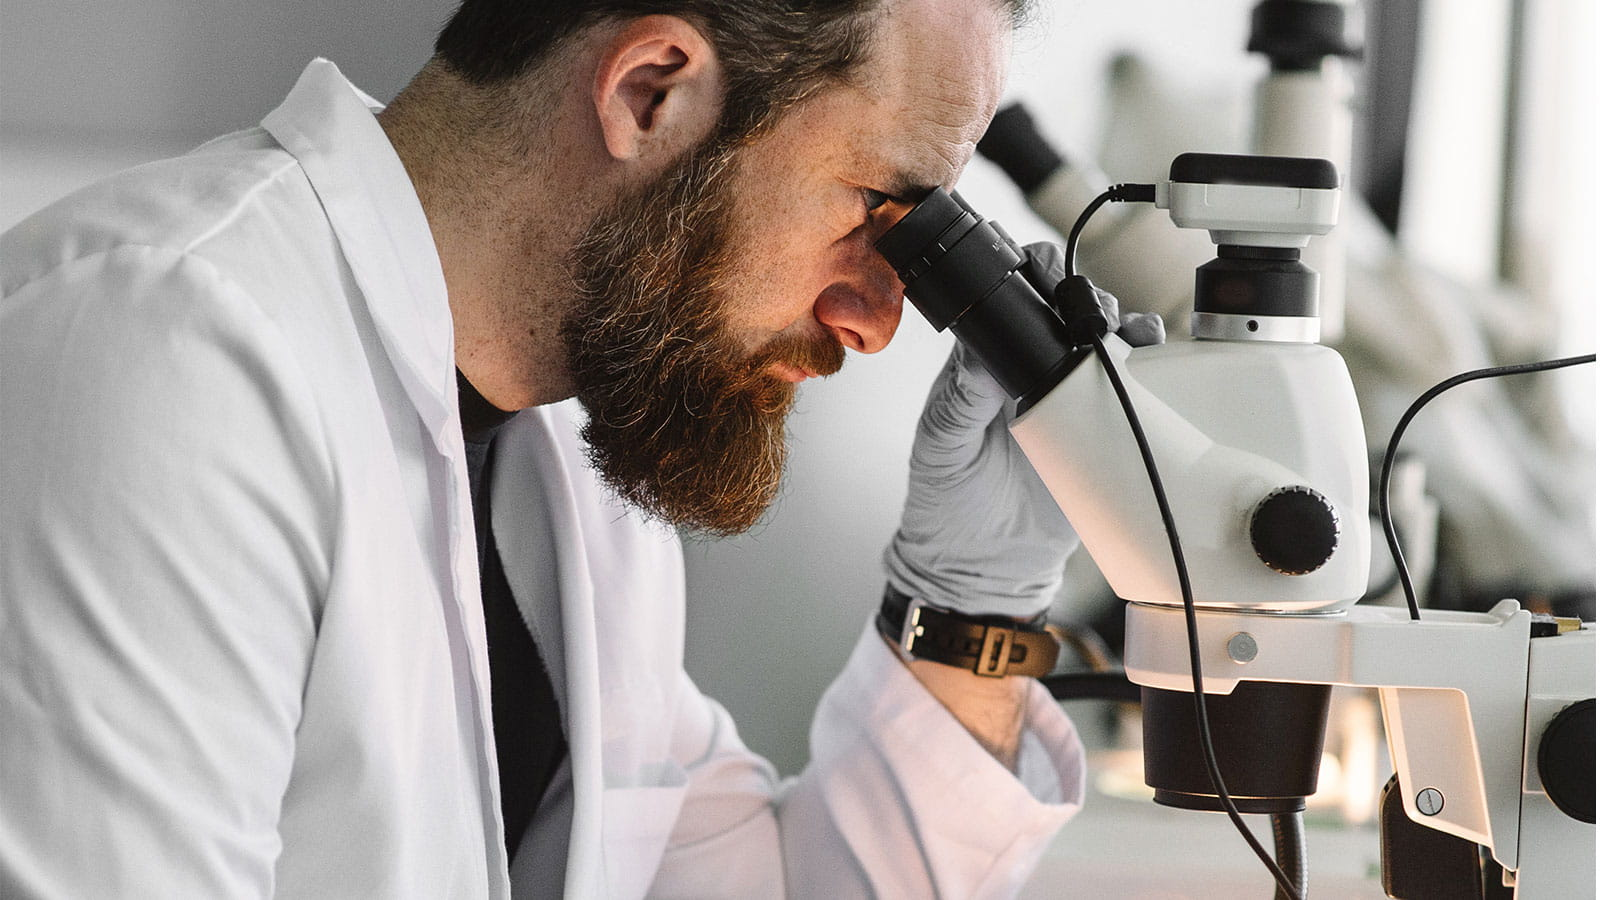 Man looking down into microscope